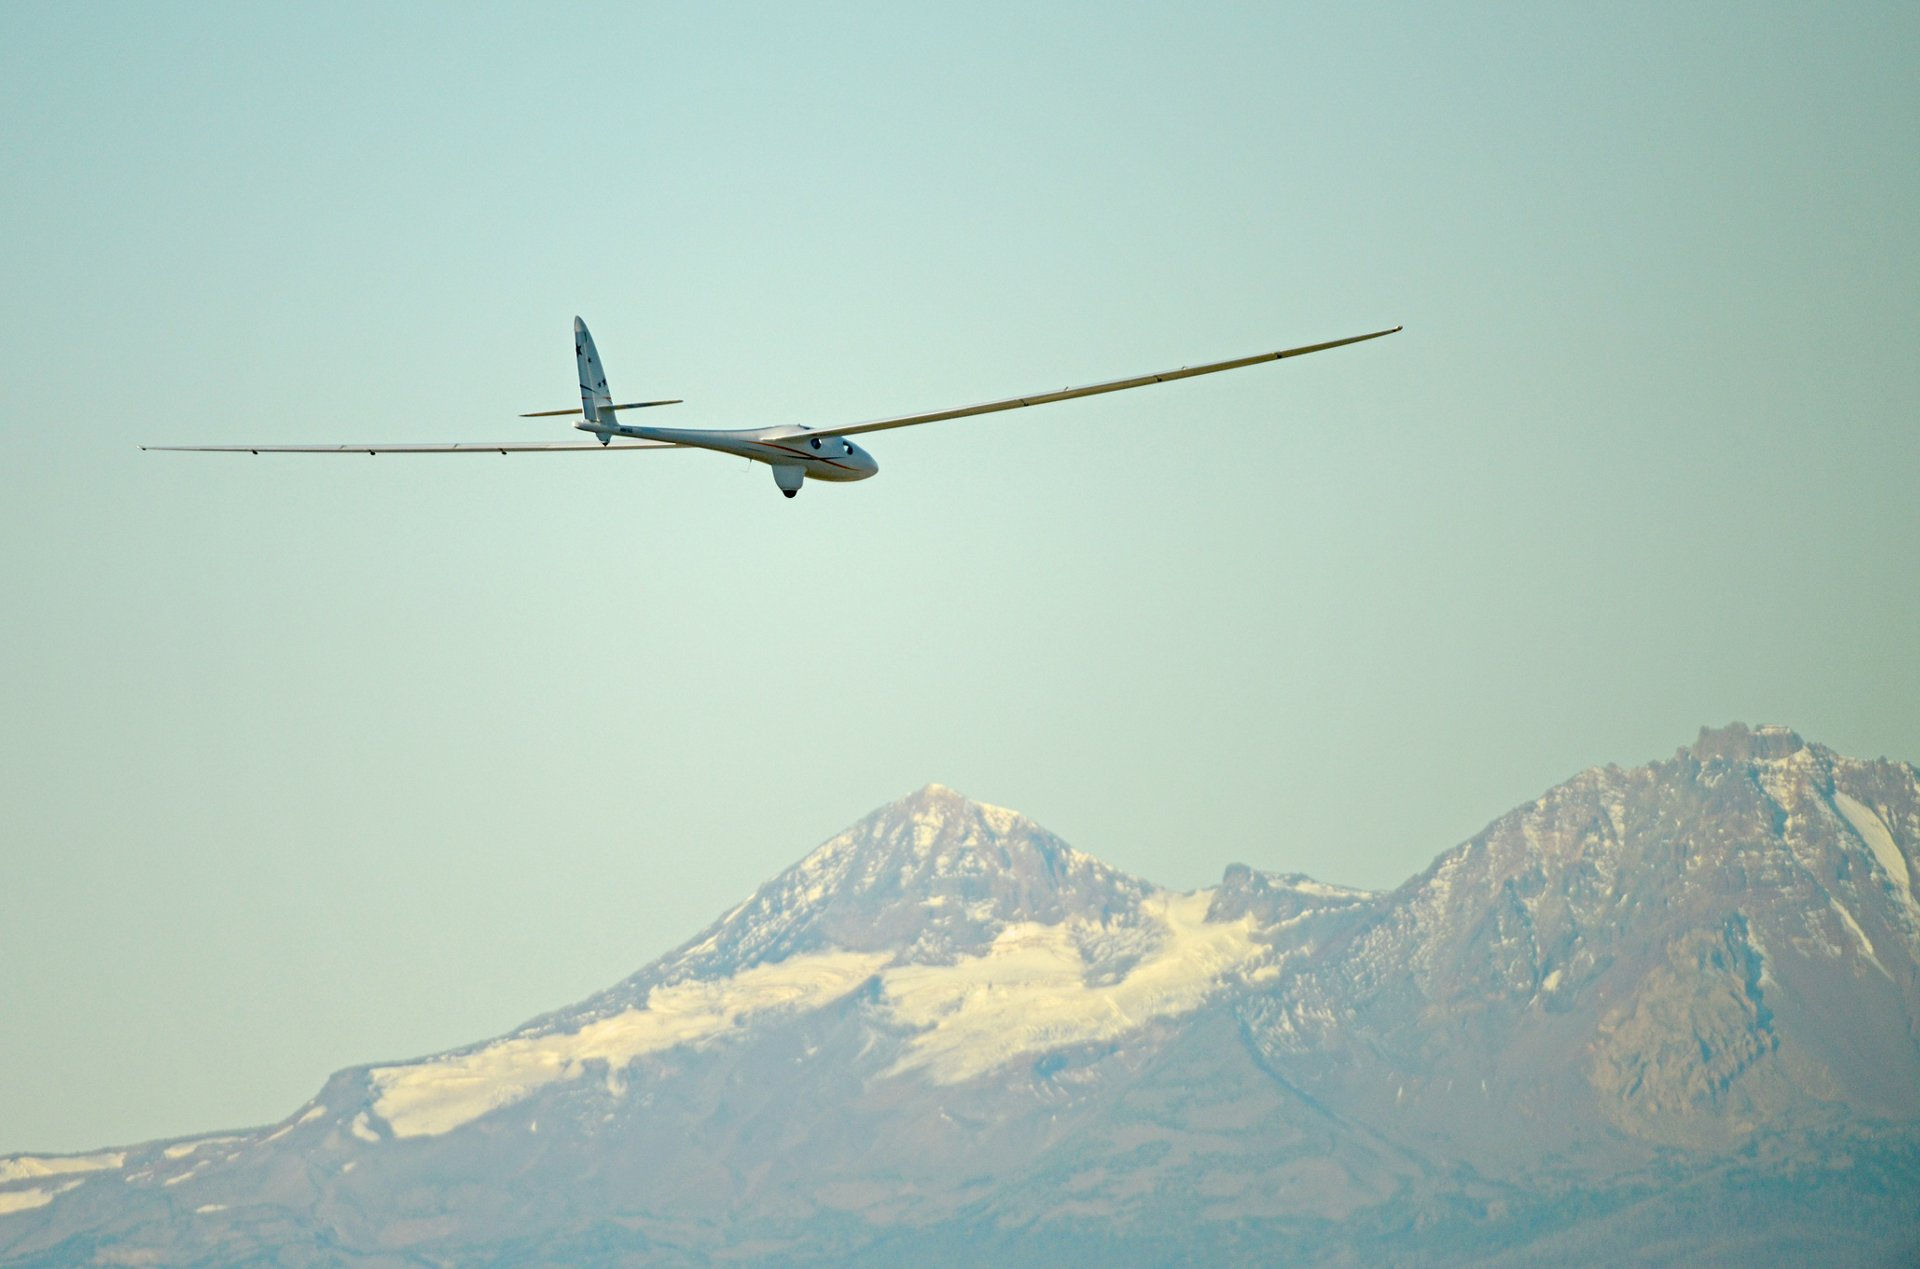 The Perlan 2 glider, the world's first engineless aircraft designed to reach the edge of space, successfully completed its first flight today in a historic moment about 5,000 feet above Roberts Field in Redmond, Oregon. The Perlan 2 is a pressurized sailplane designed to ride air currents that, in certain mountainous regions near the north and south poles, can reach into the stratosphere.  The goal of this project is to open up a world of new discoveries related to high-altitude flight, climate change and space exploration.